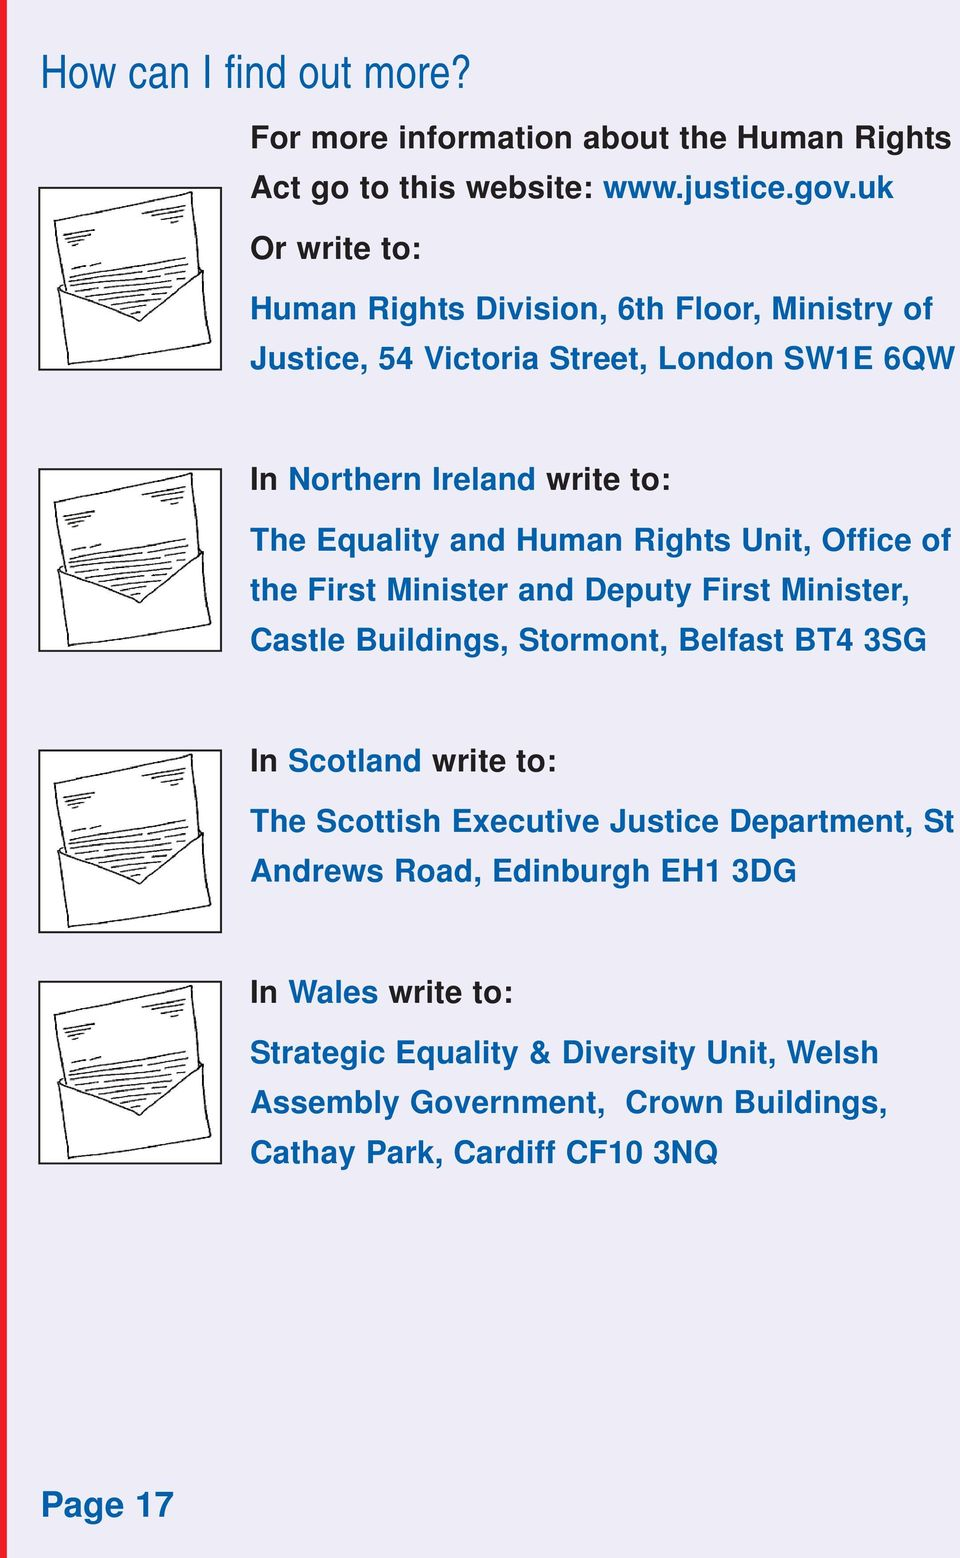 Human Rights Unit, Office of the First Minister and Deputy First Minister, Castle Buildings, Stormont, Belfast BT4 3SG In Scotland write to: The Scottish